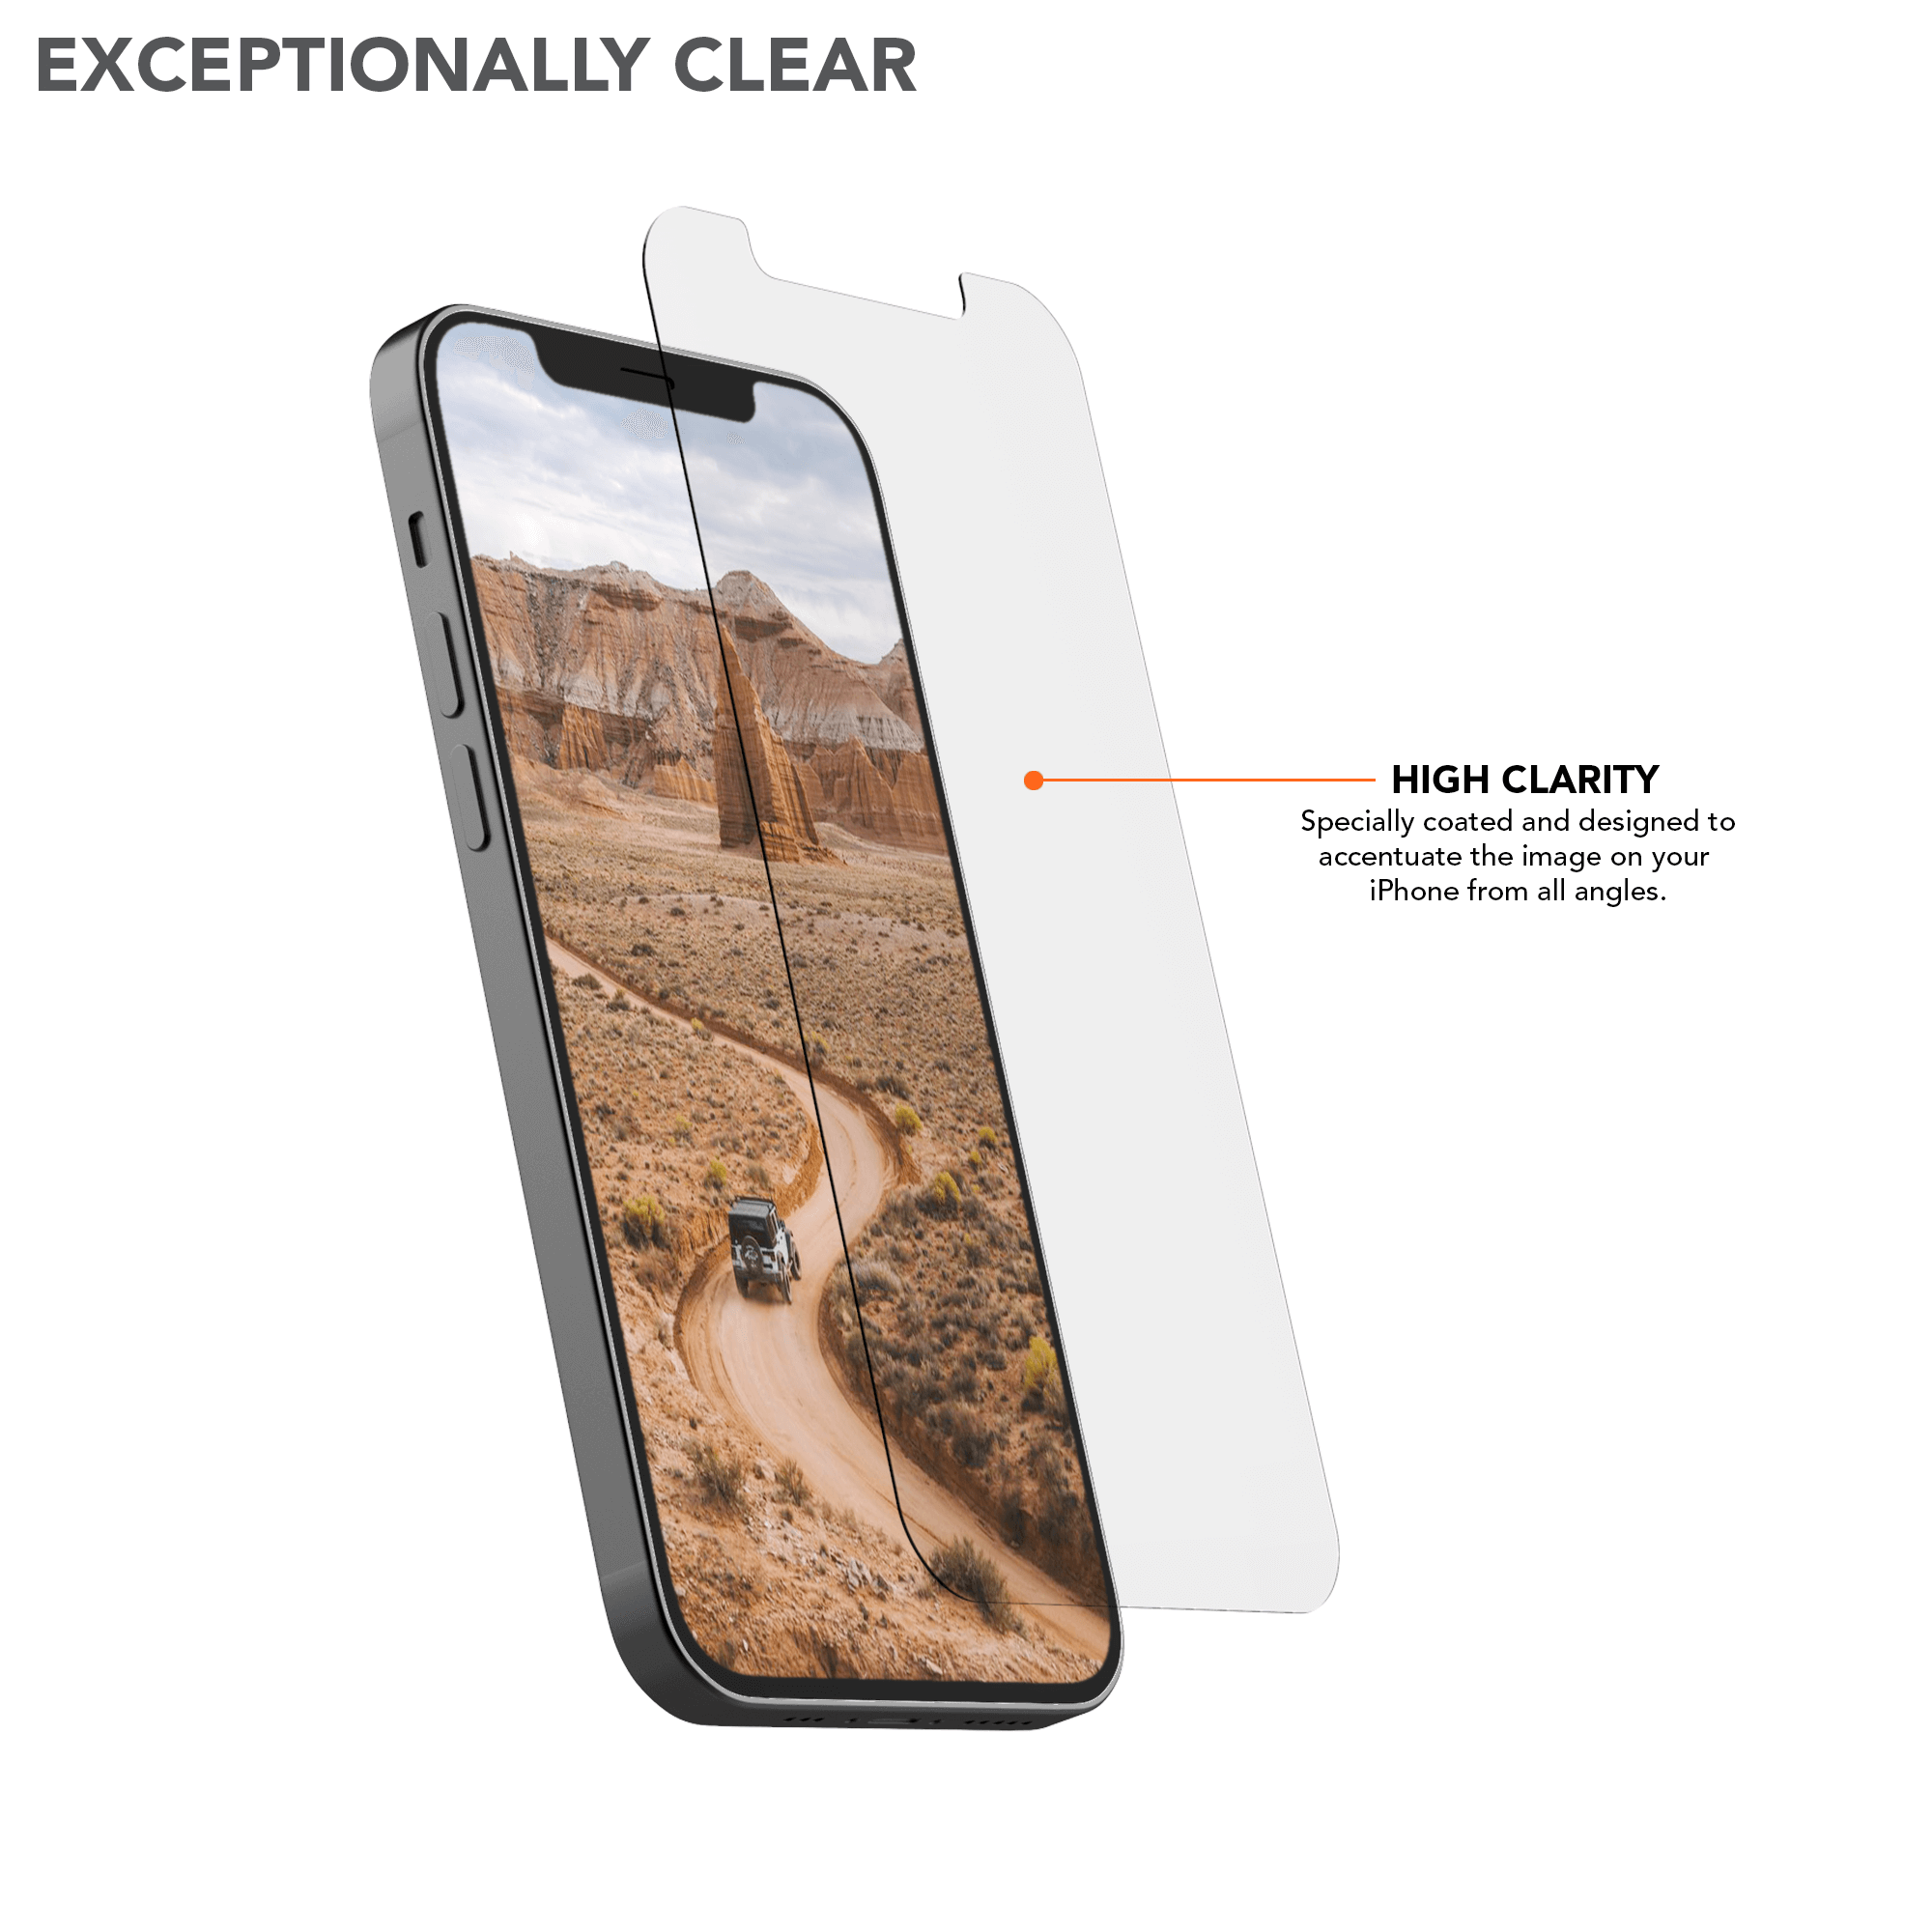 iPhone 12 Pro Max Tempered Glass Screen Protector (2 Pack)